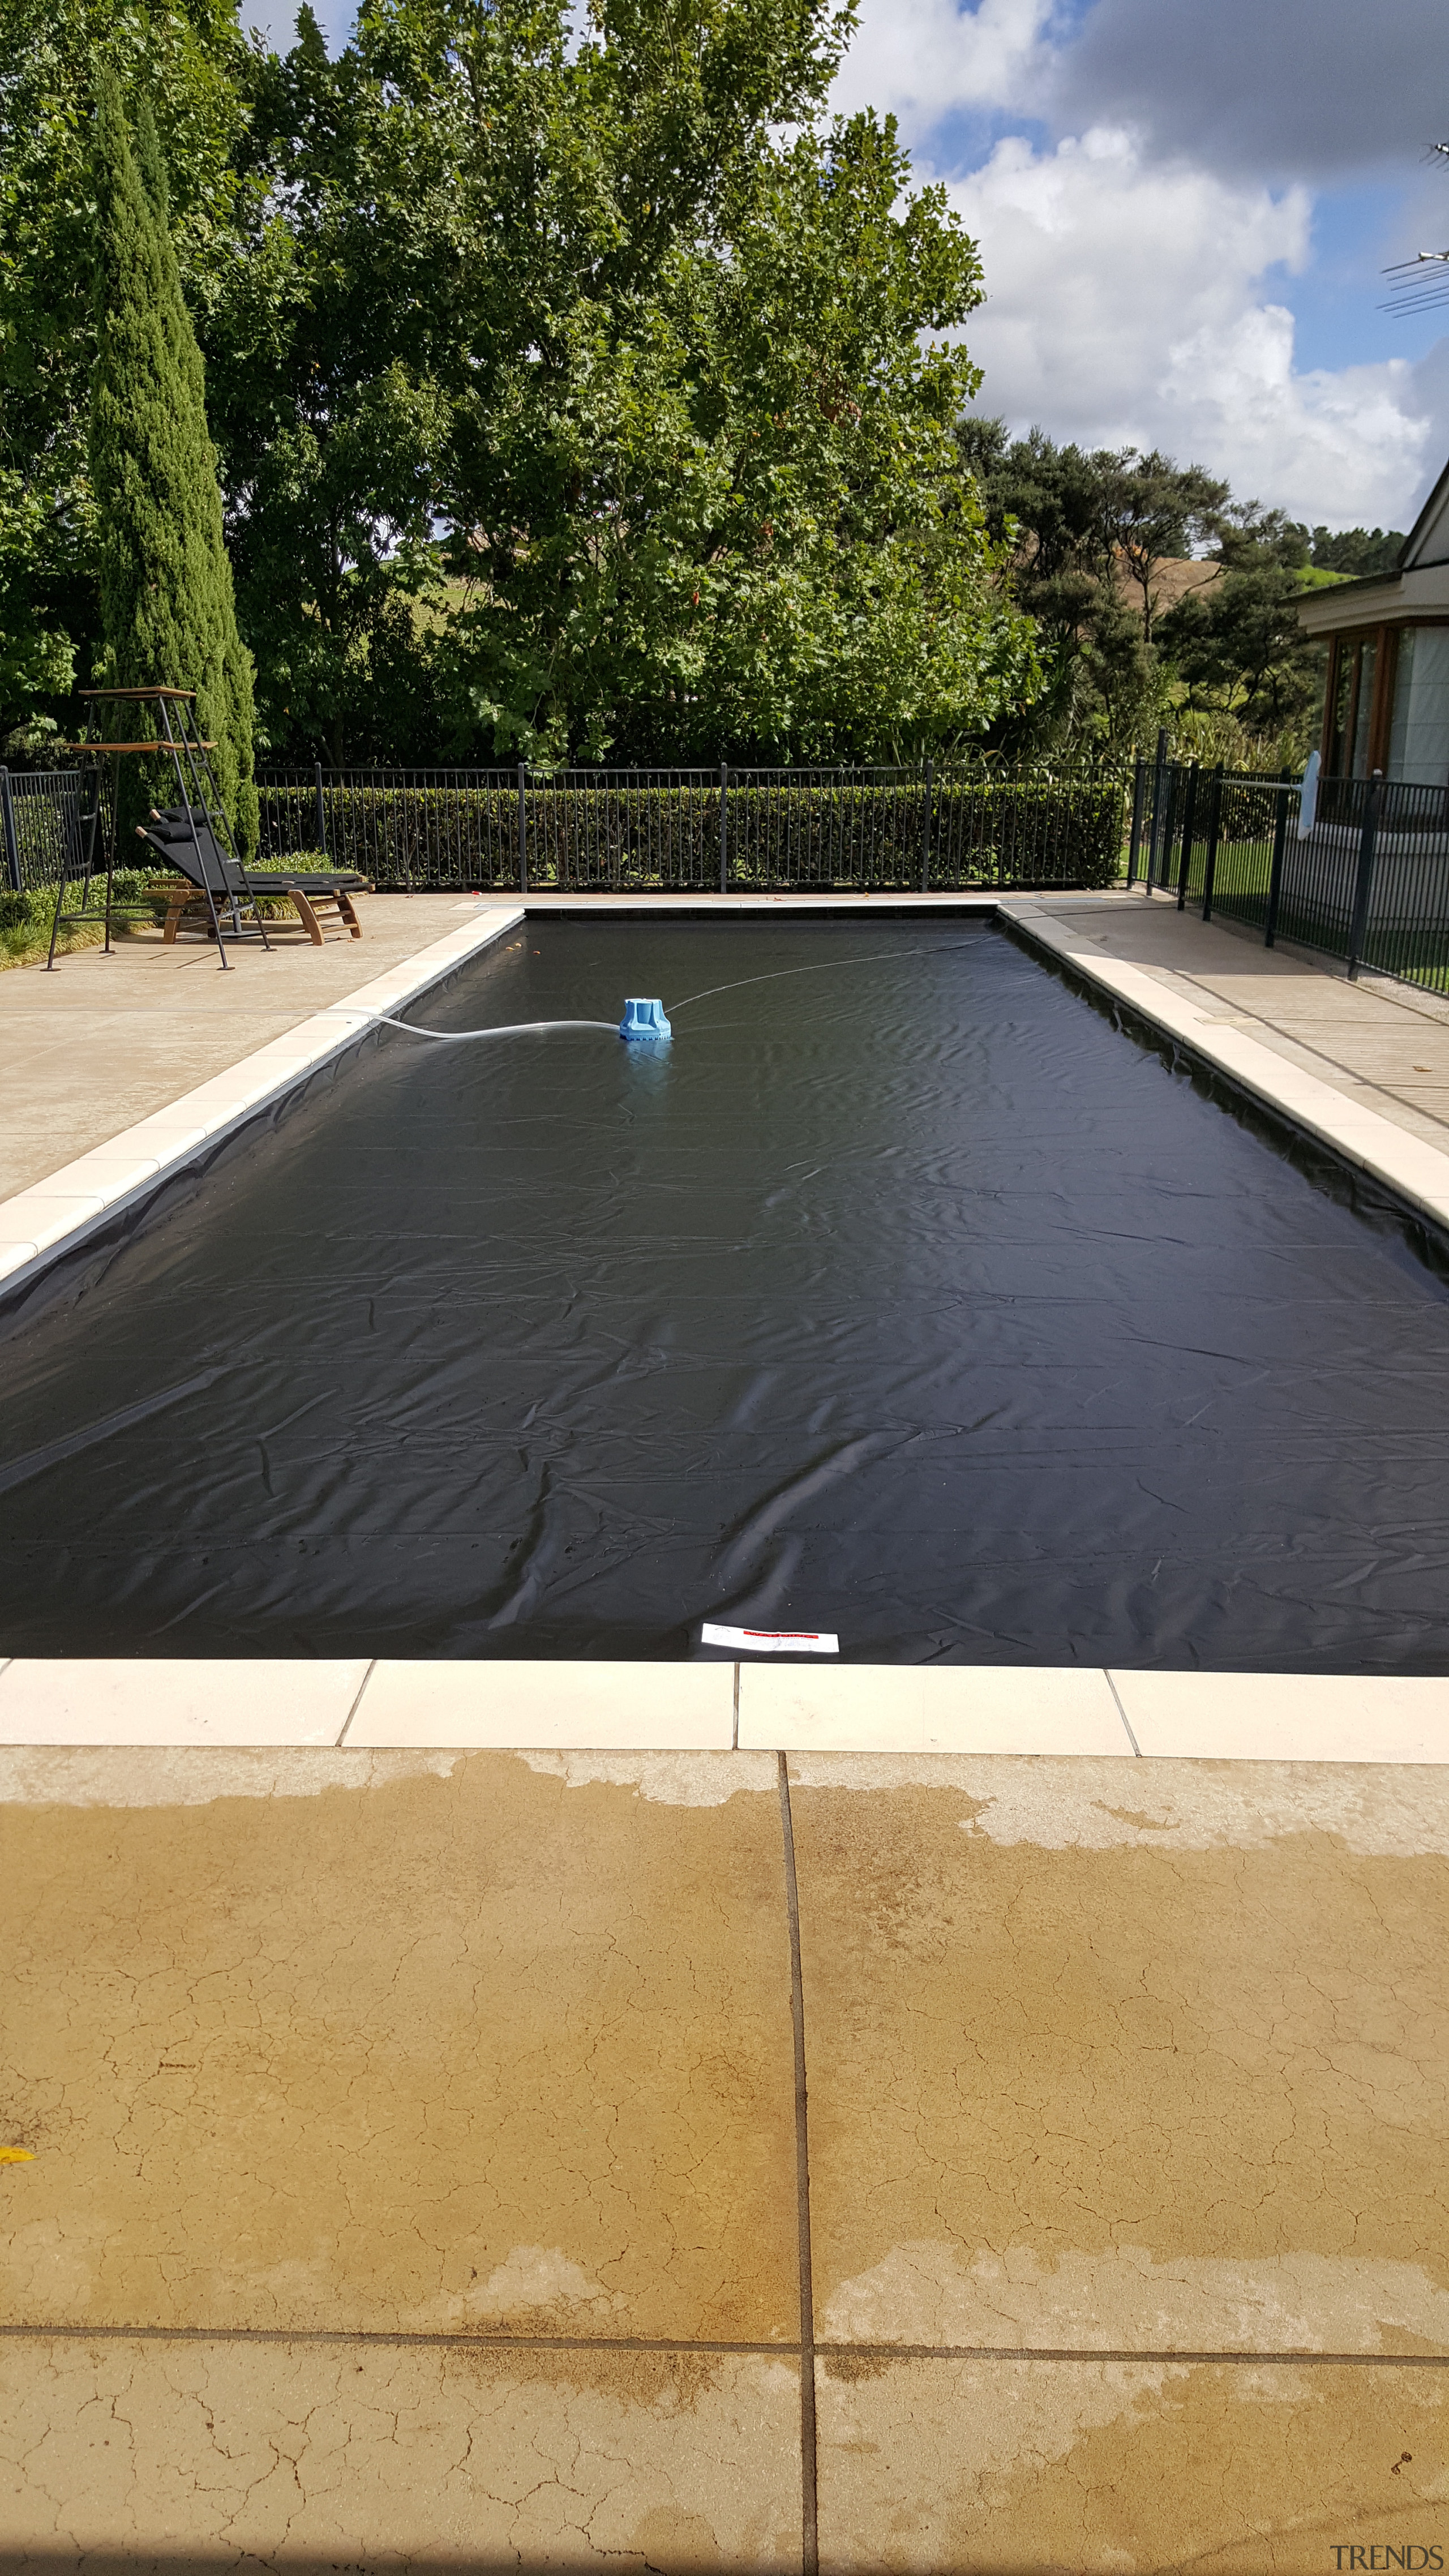 This Coverstar Eclipse Auto Pool Covers is just outdoor, swimming pool, water, covers 4 pools, Auto pool cover, automated